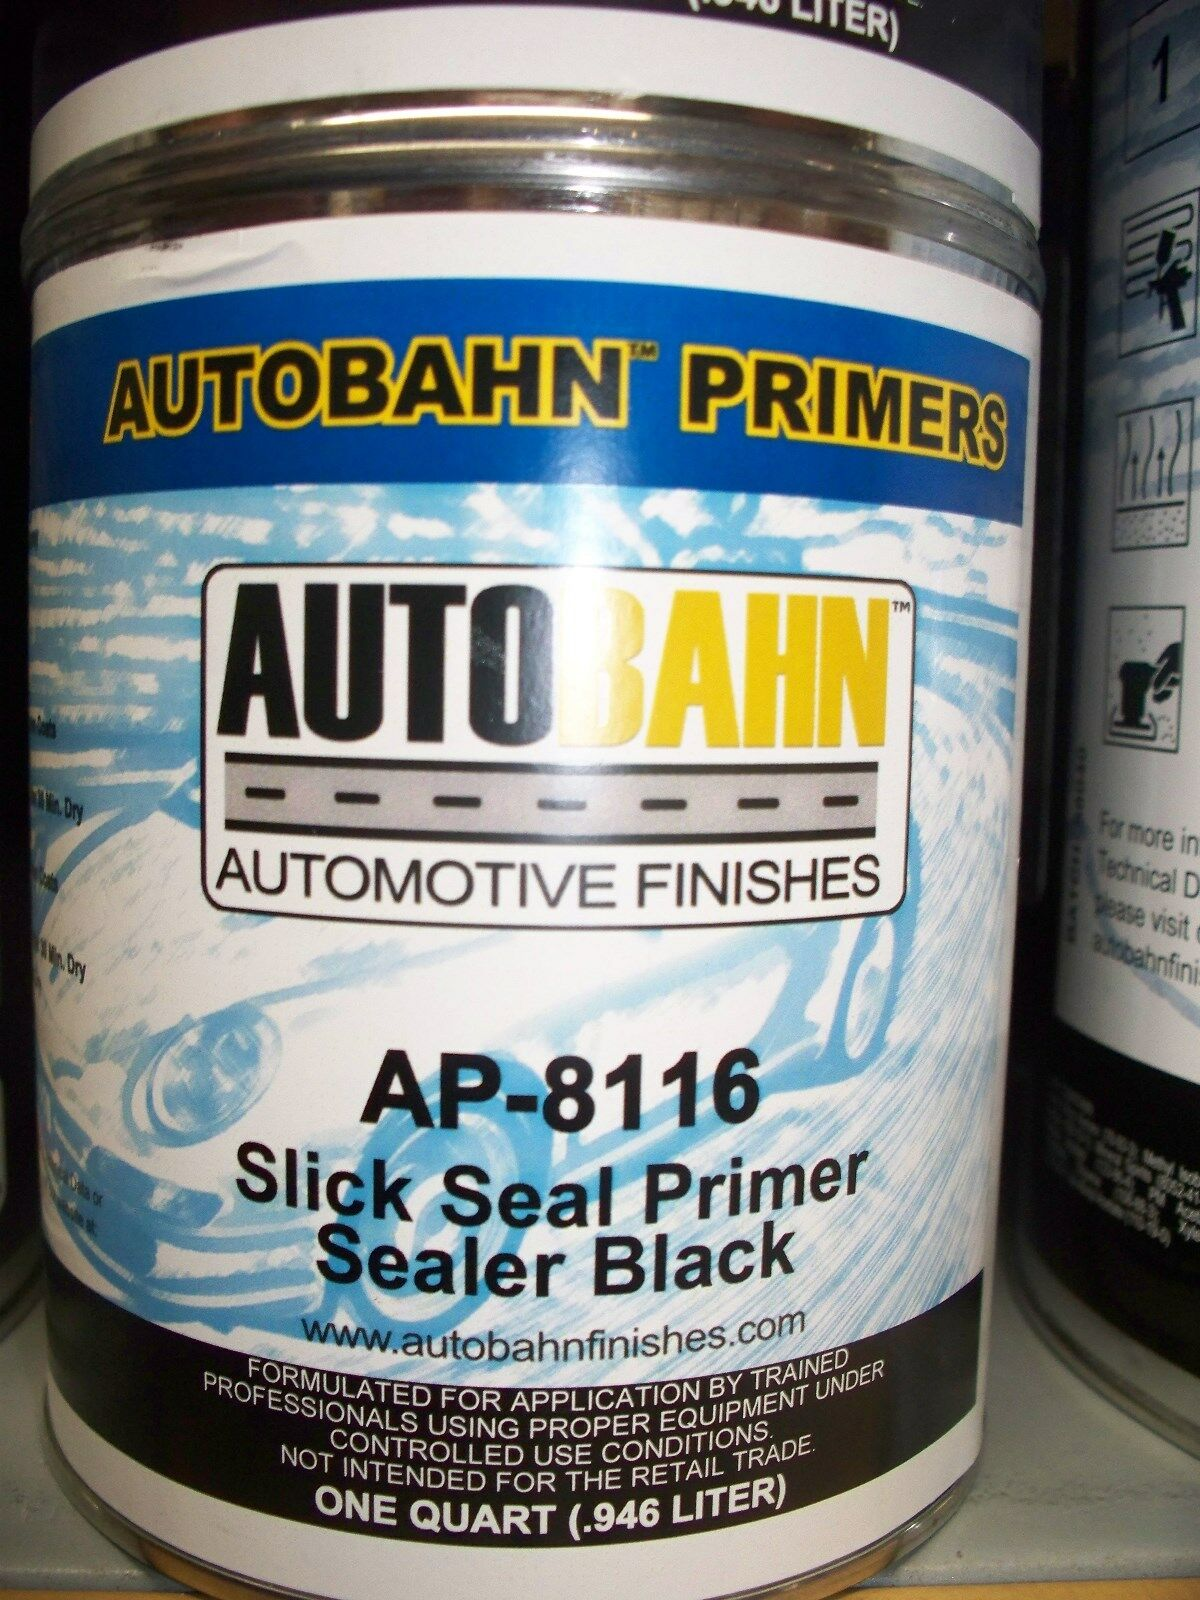 black slick seal primer sealer ready to spray 1 gallon auto car